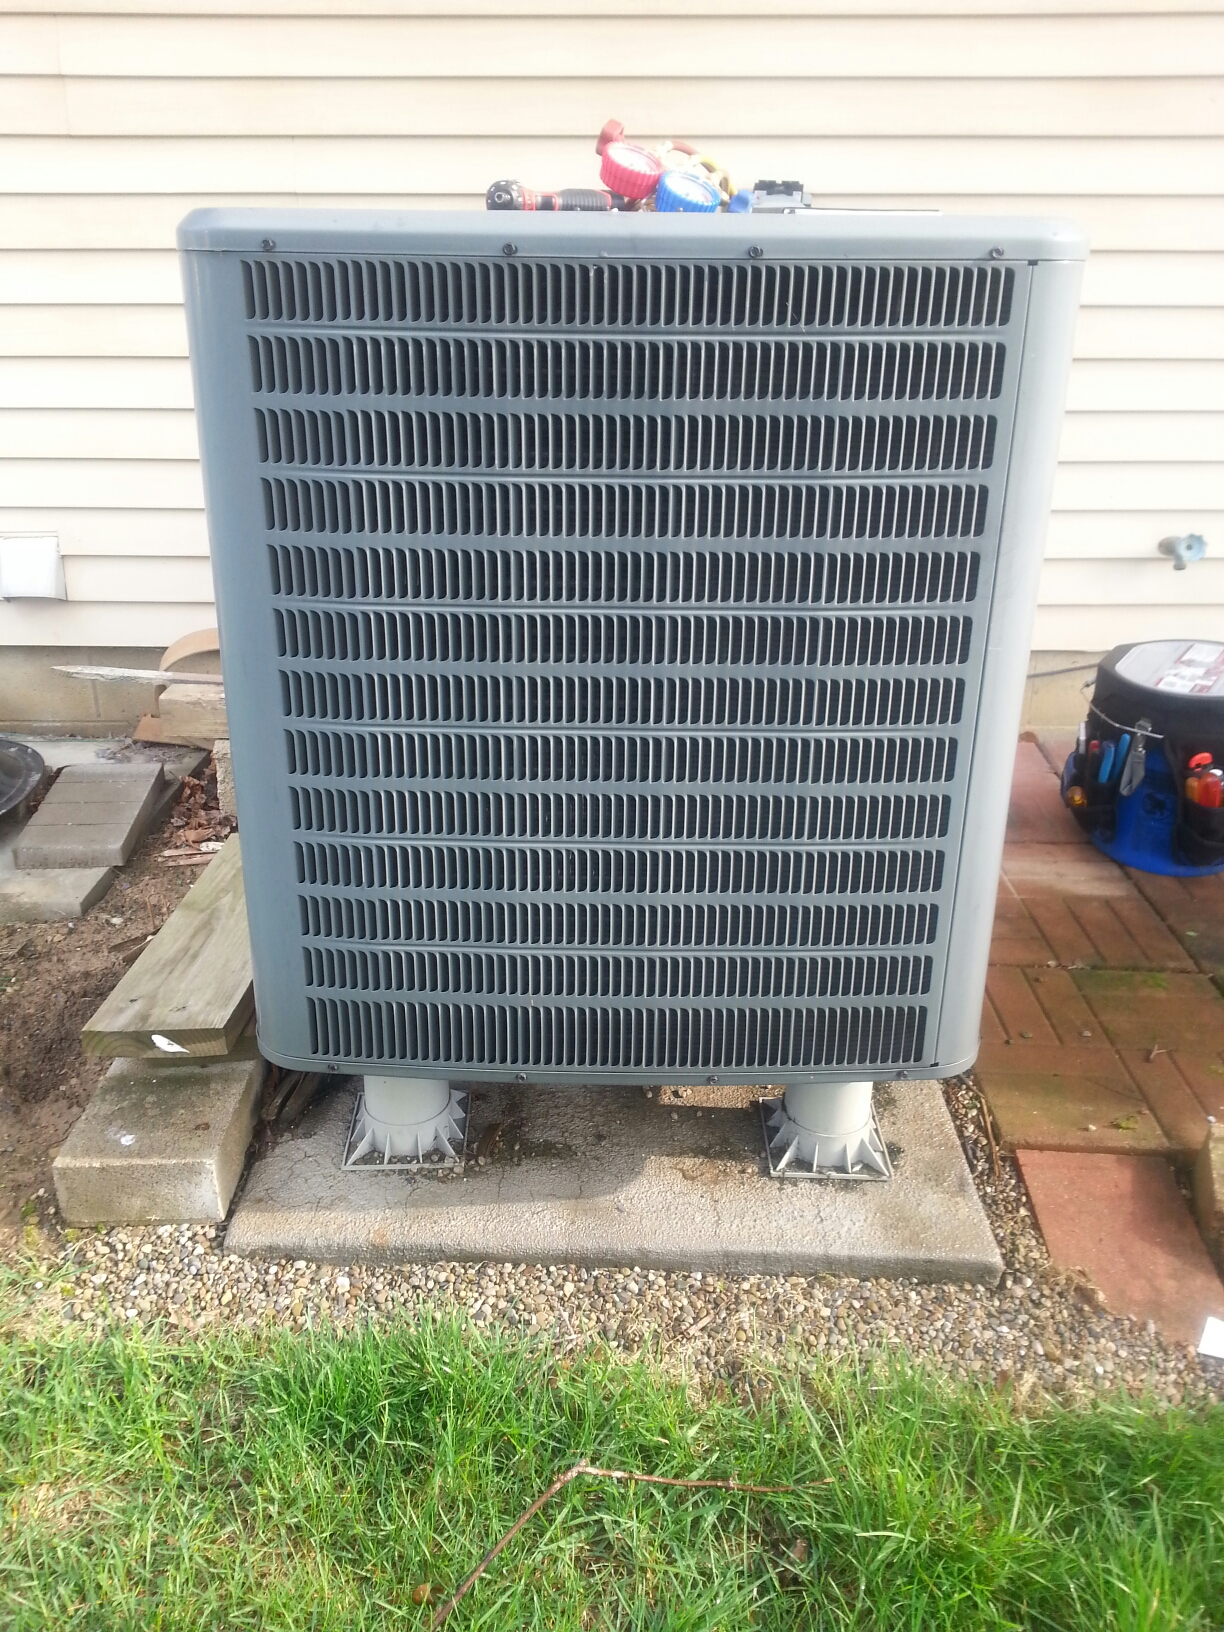 Sunbury, OH - Repairing a Goodman heat pump.